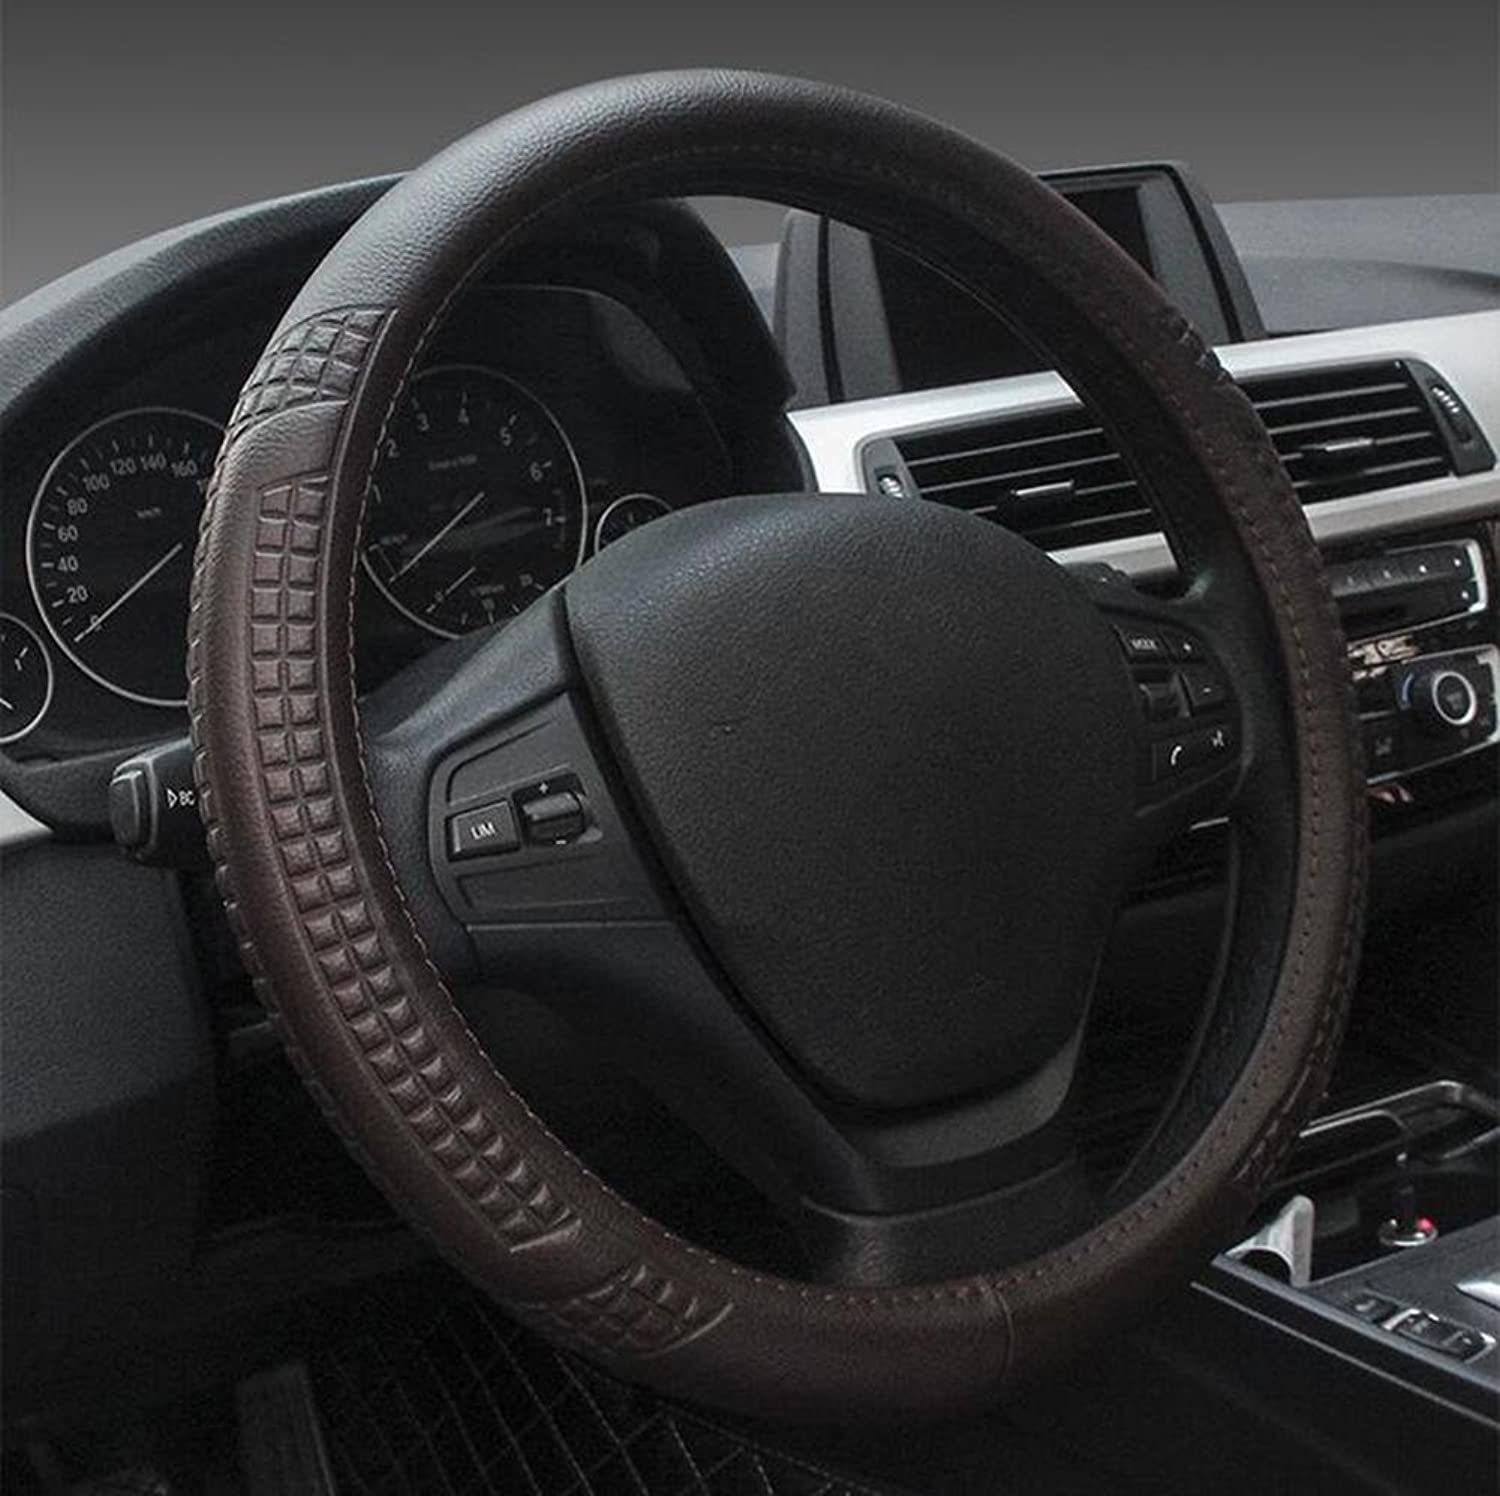 Auto Accessories 2018 Car Steering Wheel Cover 2018 New Leather Linen Car Cover Four Seasons Universal, Brown, 38CM